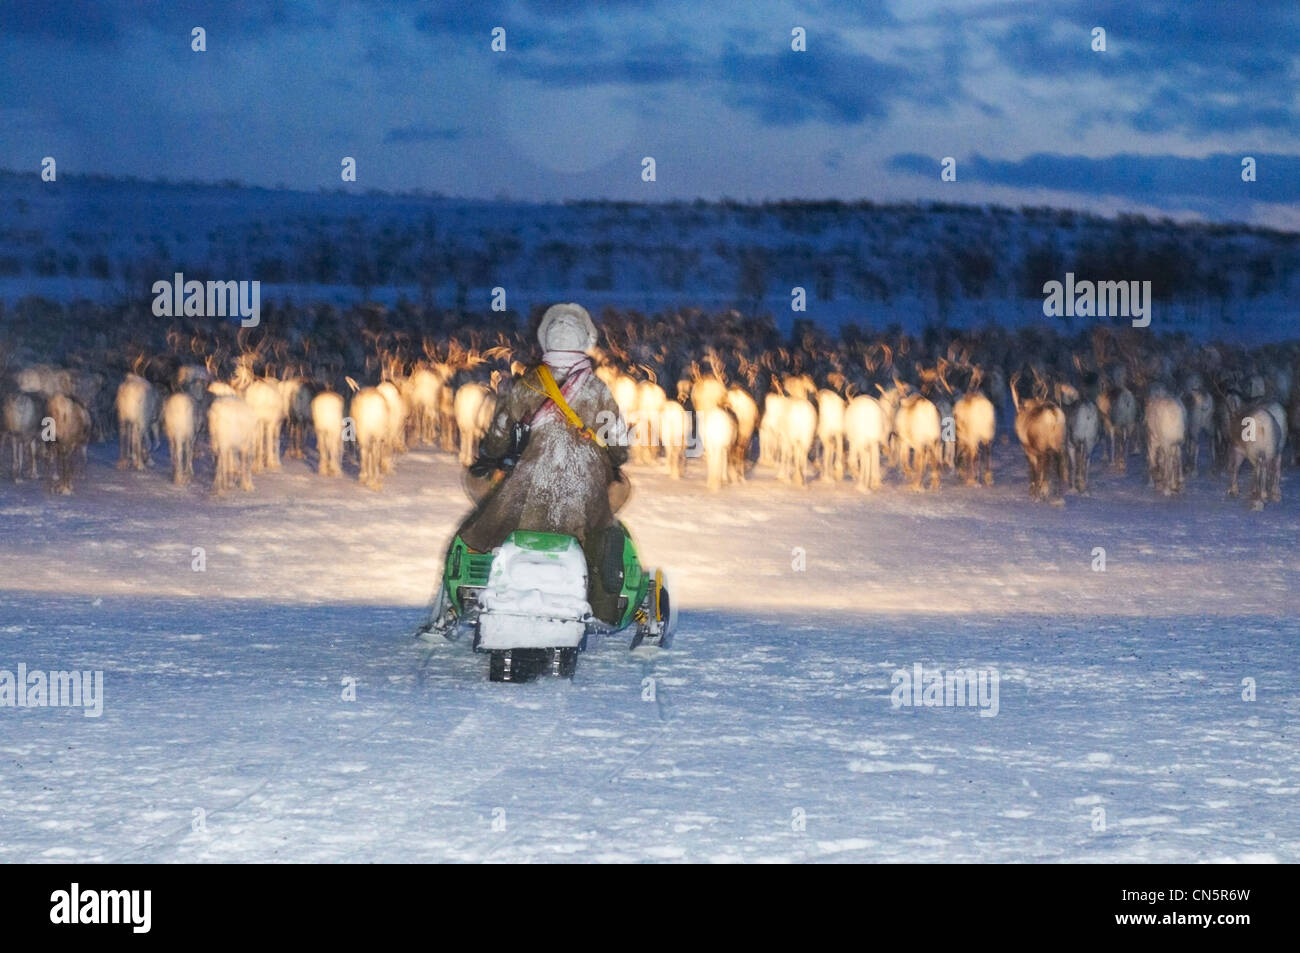 Norway, Lapland, Finnmark County, Karasjok, the great annual reinder migration, rounding up in the night - Stock Image